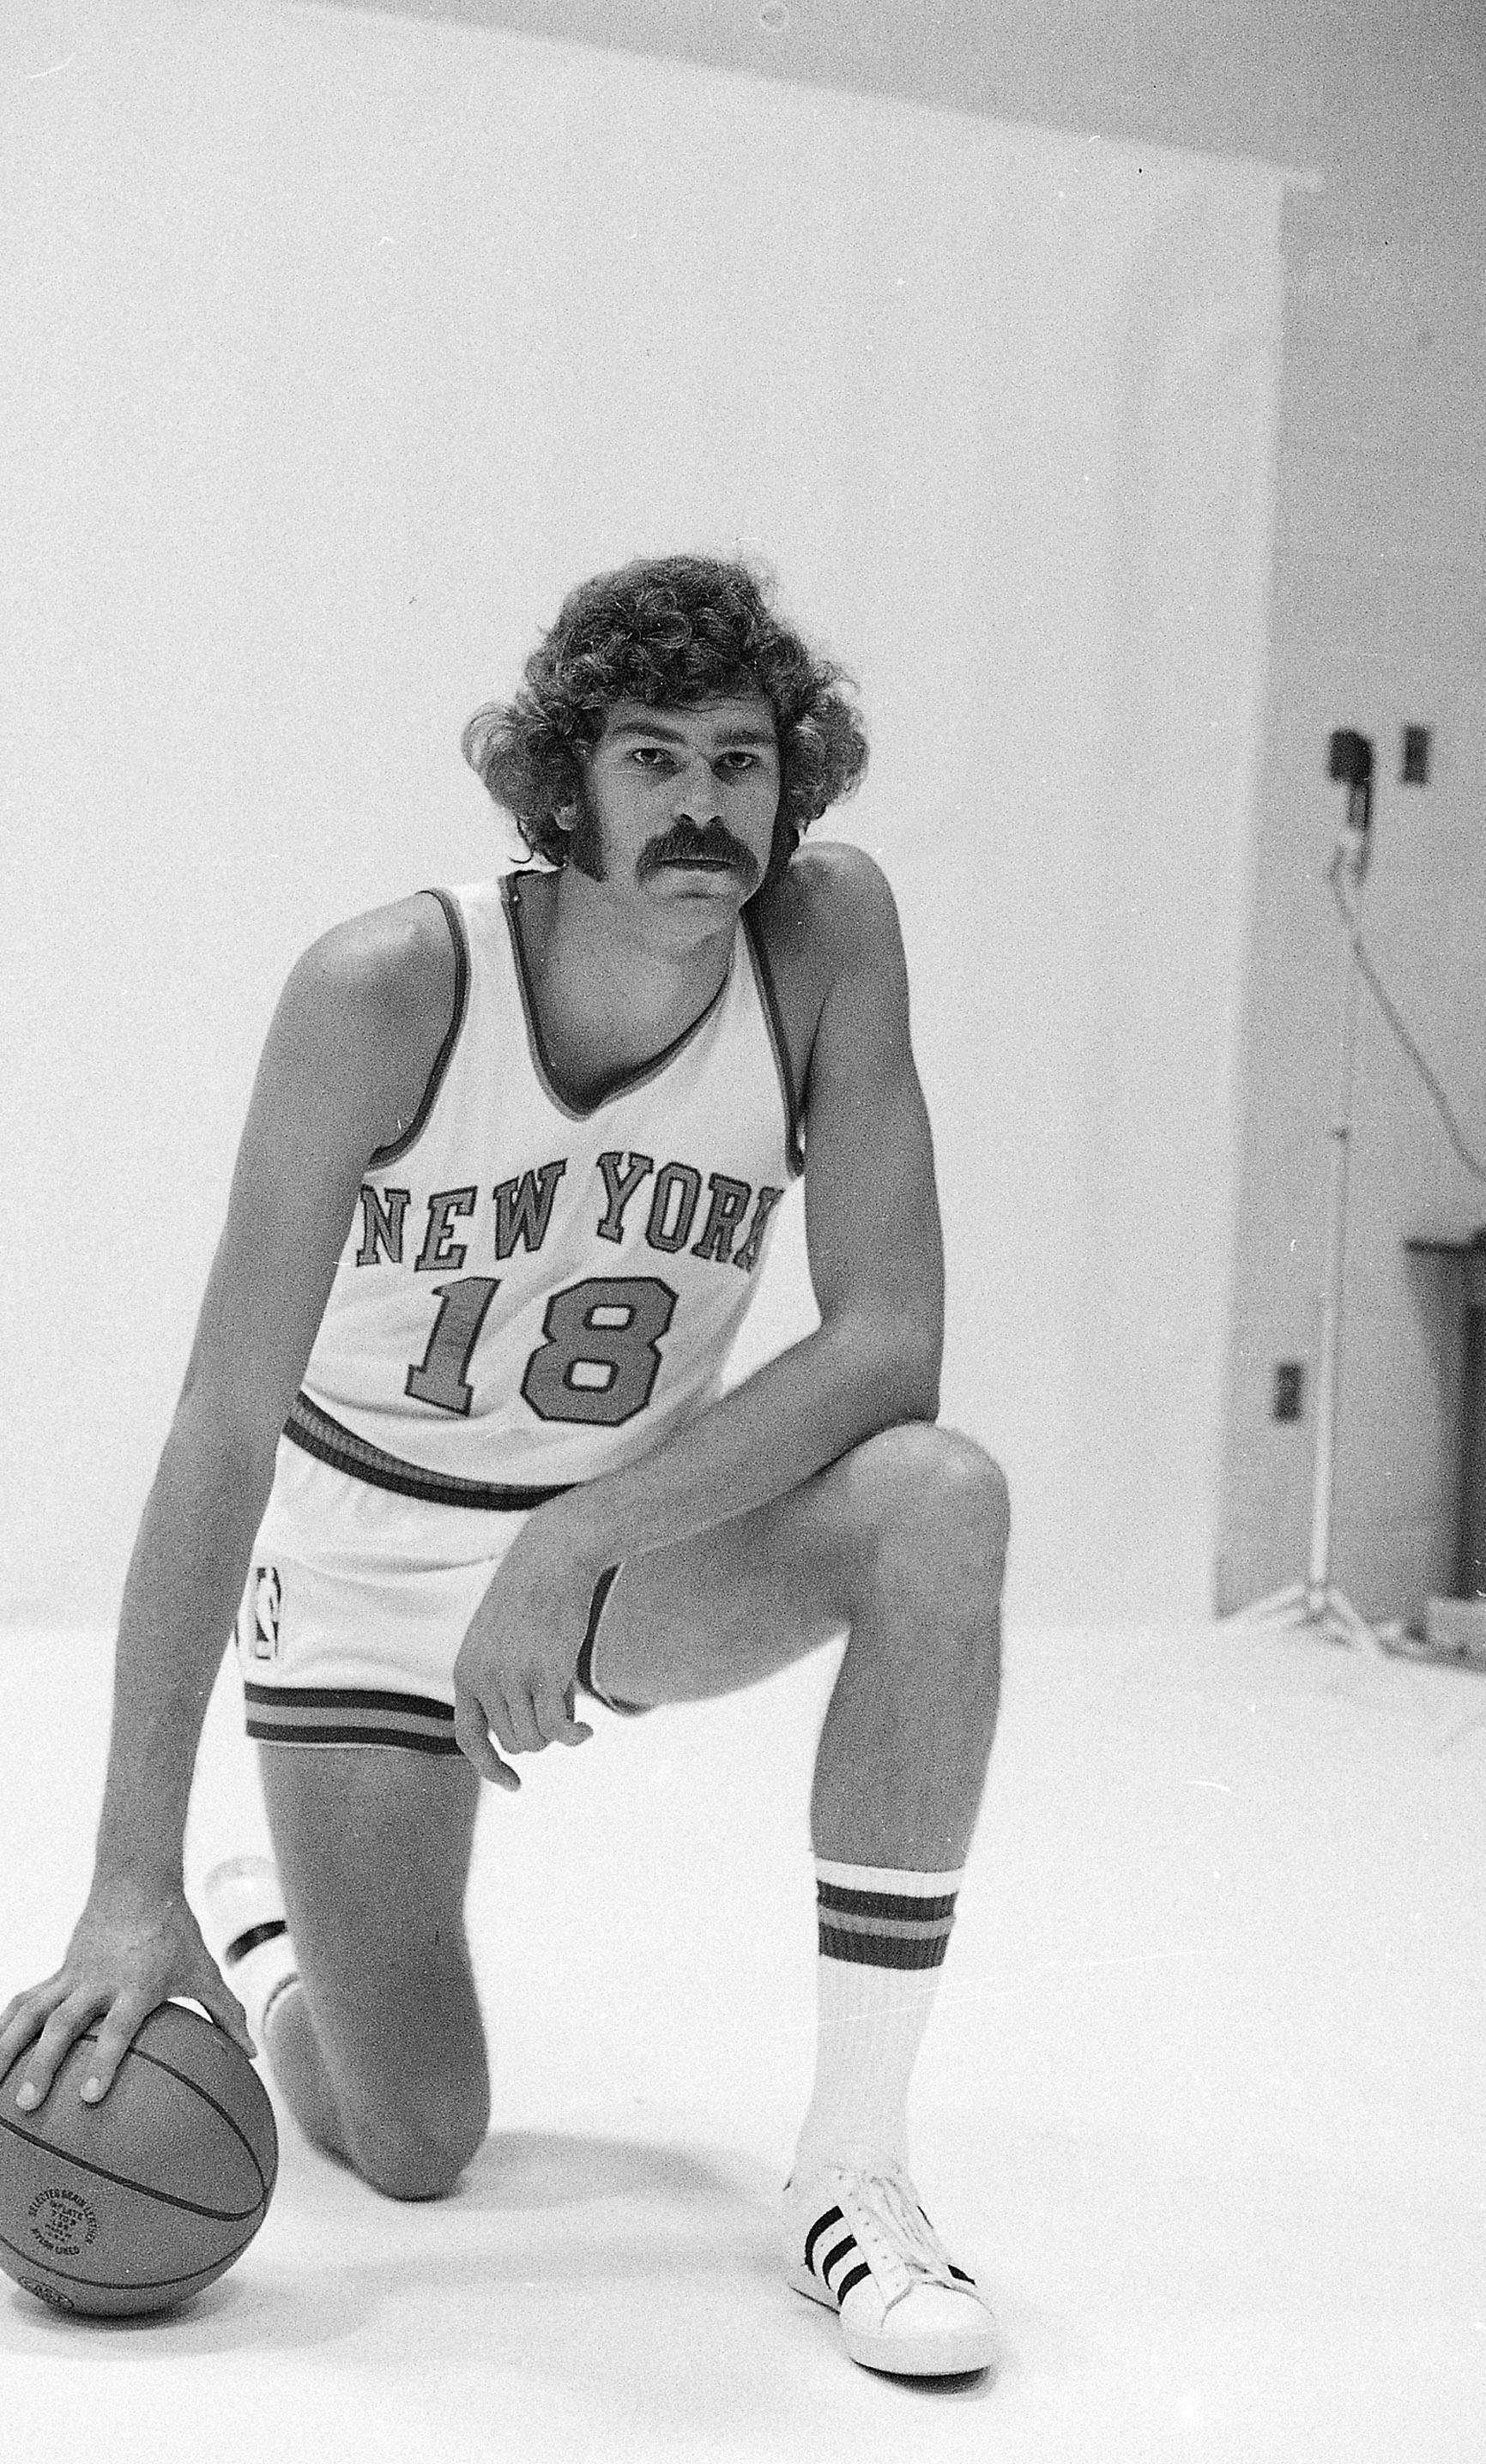 "FILE - In this 1971, file photo, New York Knicks' Phil Jackson poses for a photo. Jackson will be introduced as the newest member of the New York Knicks' front office Tuesday morning, according to a person familiar with the negotiations between the 11-time champion coach and the team.  The person spoke on condition of anonymity on Friday, March 14, 2014, because the Knicks would only confirm that a ""major announcement"" involving team executives was scheduled."